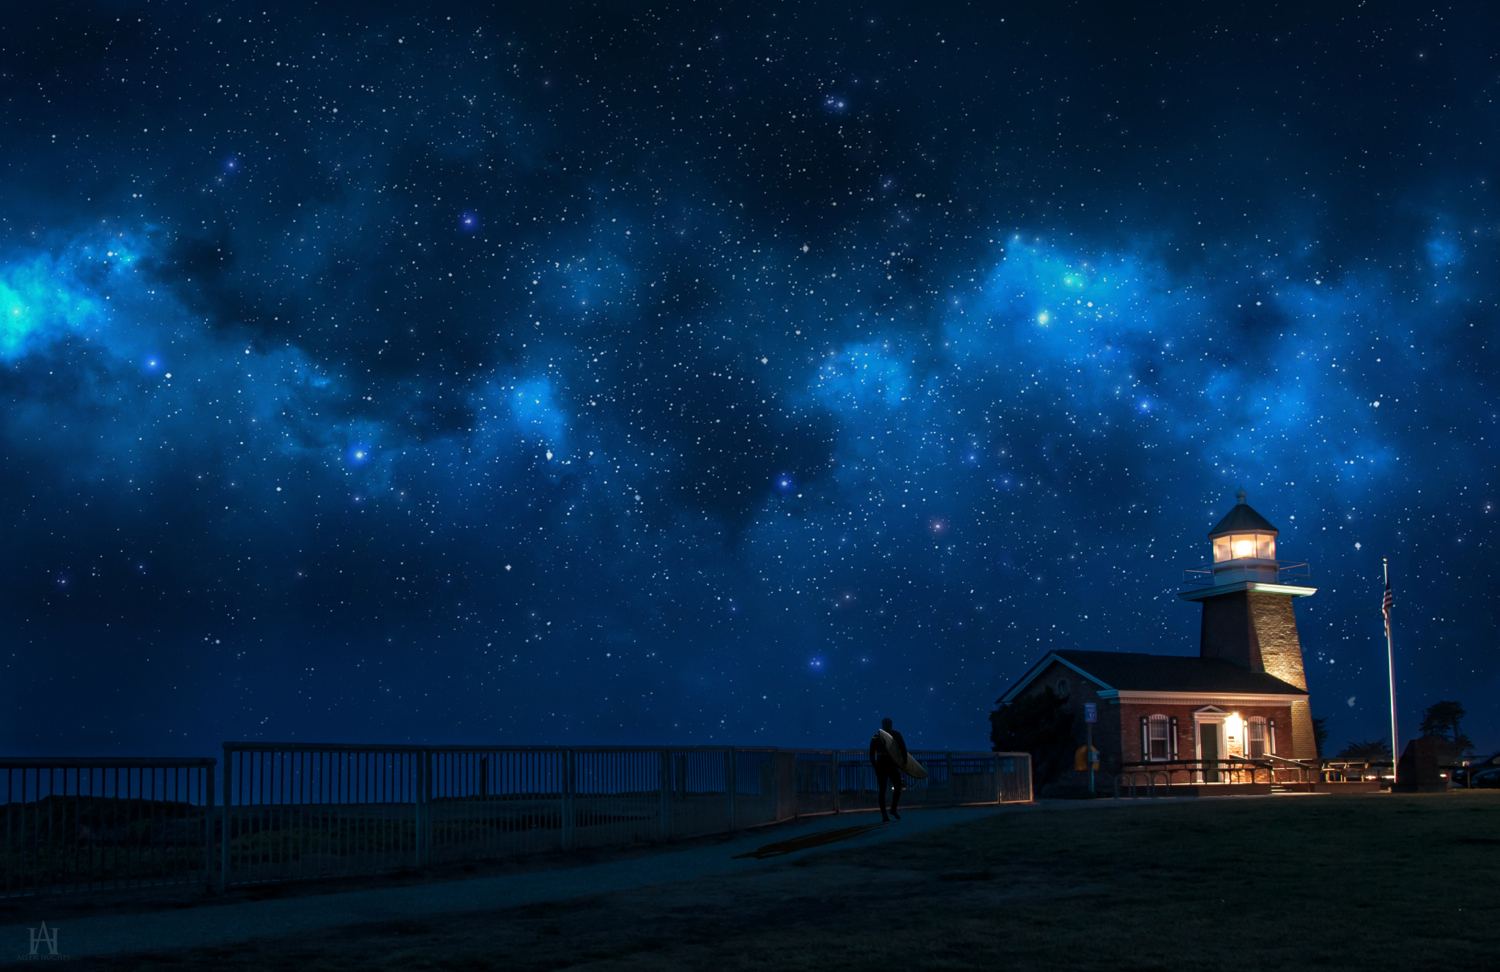 Lighthouse At The Edge by Allen59